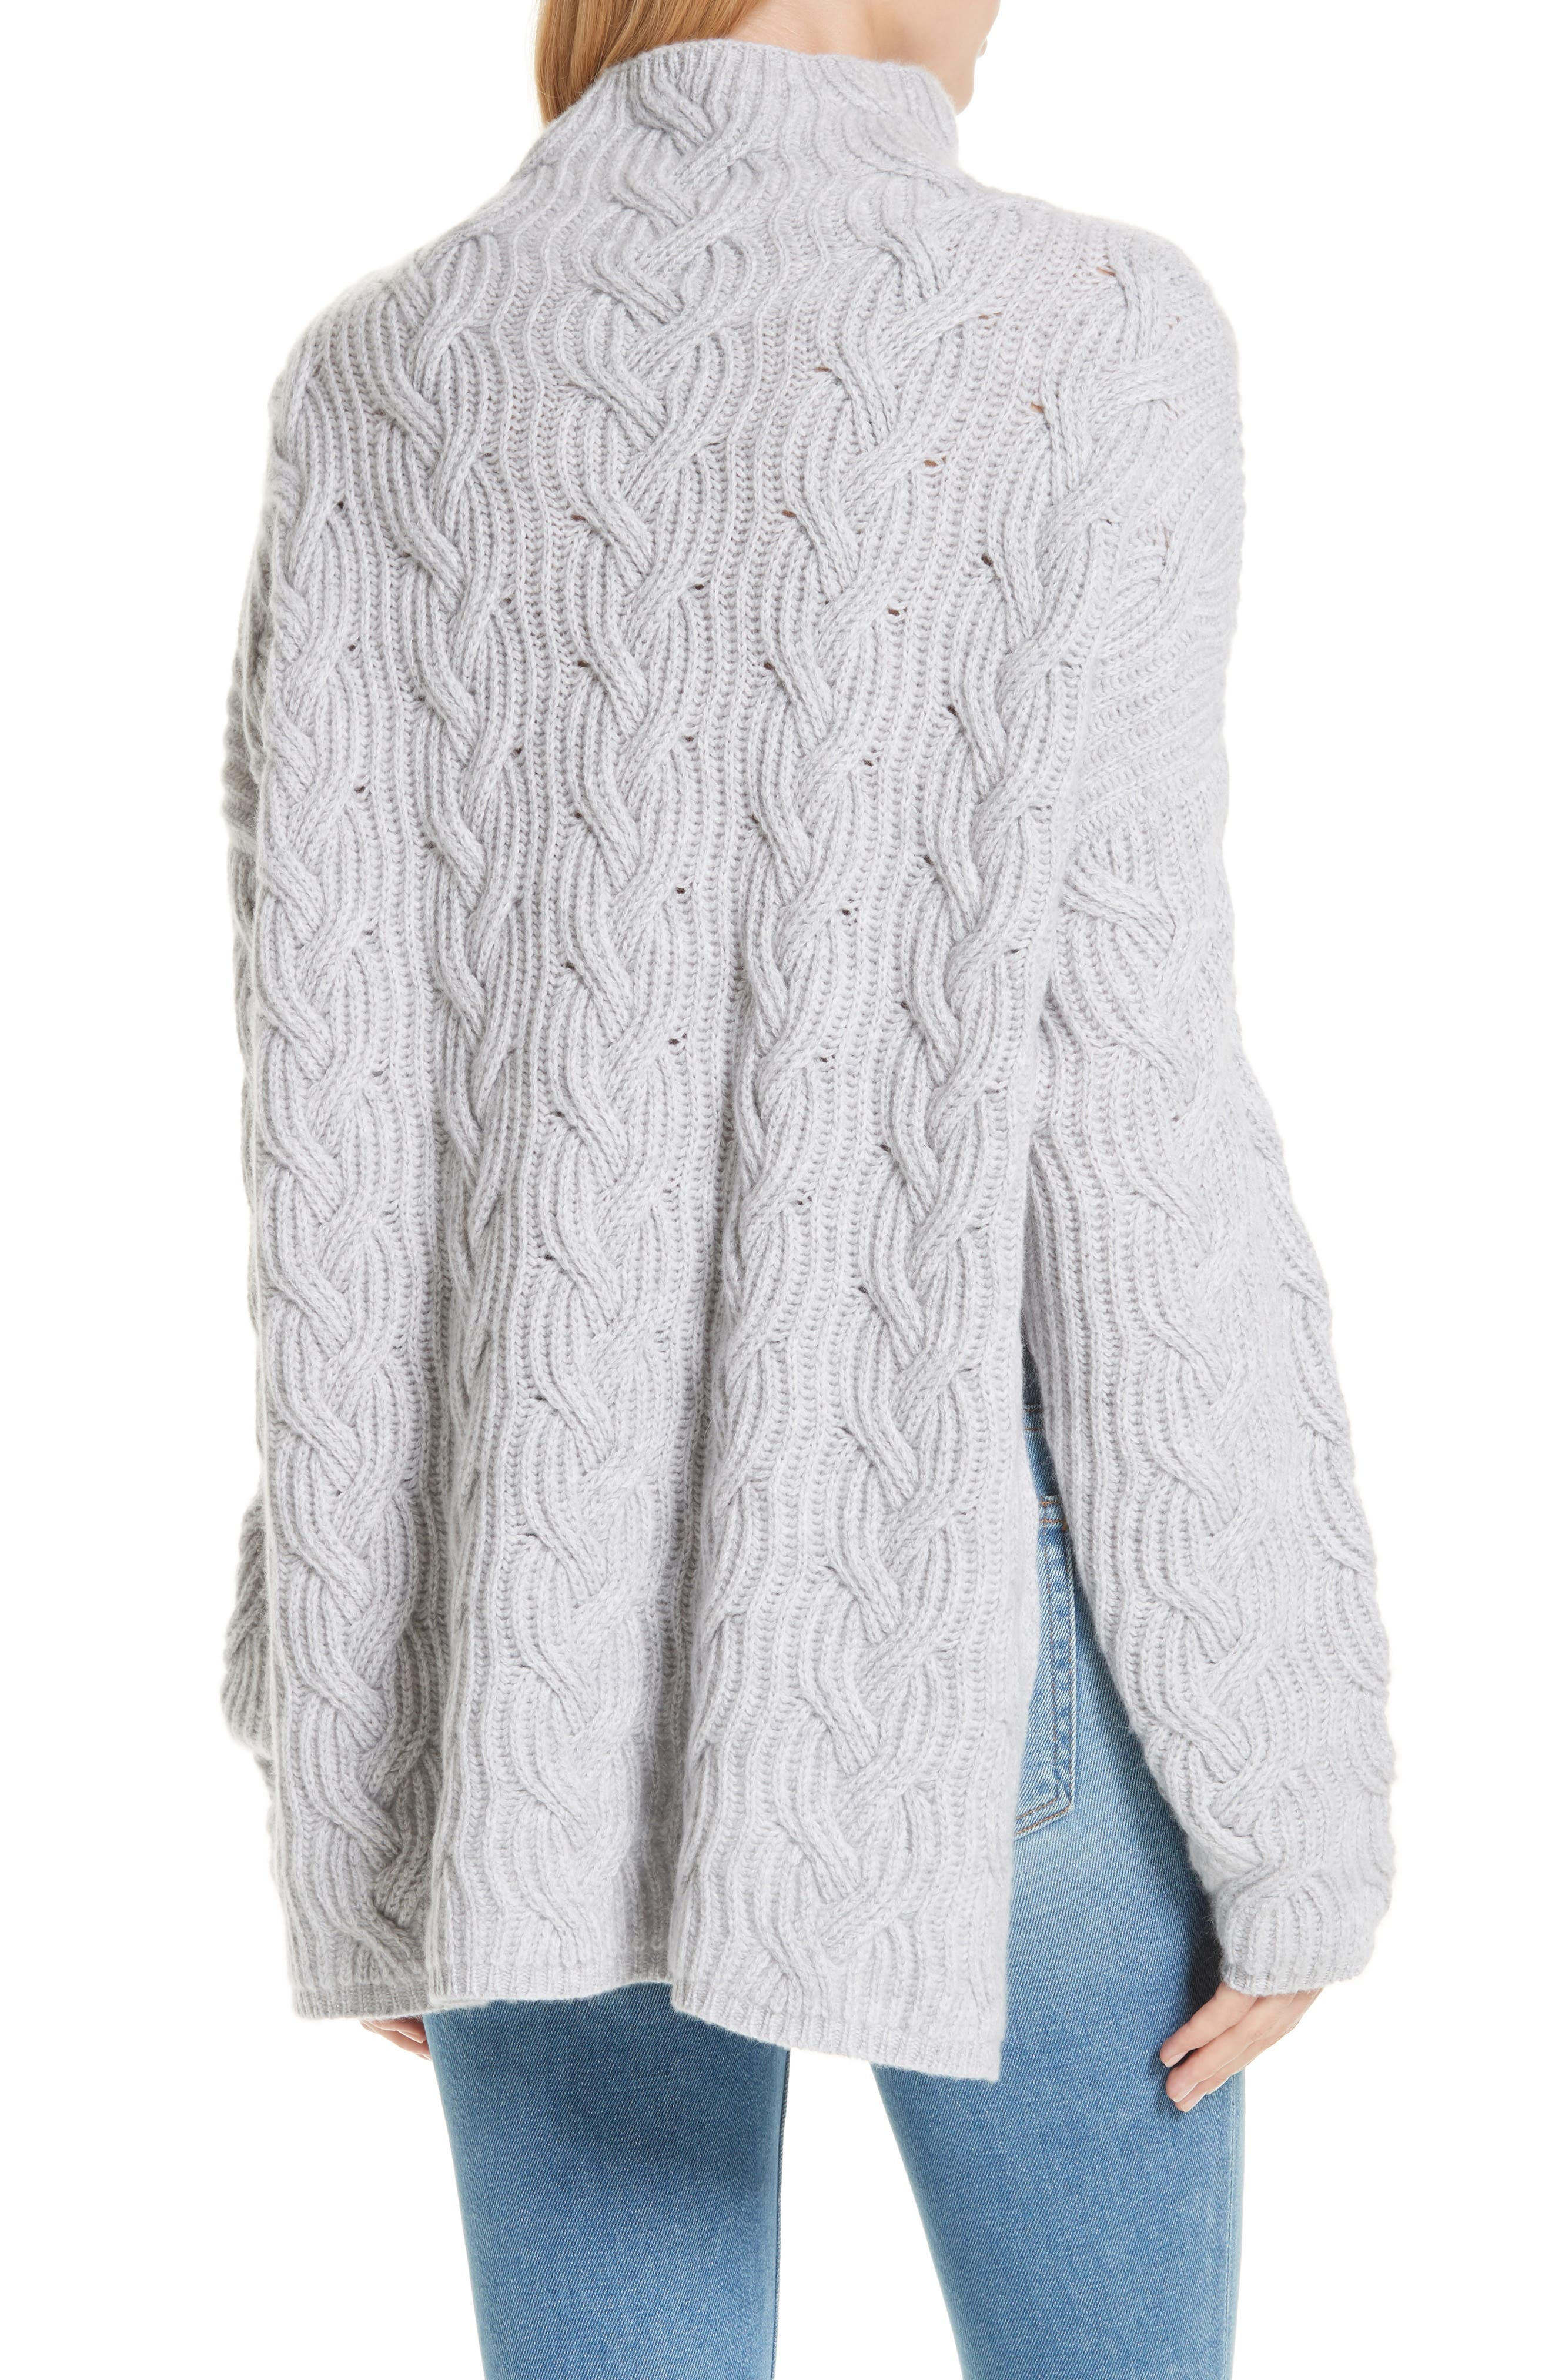 Cable Cashmere Knit Sweater,                             Alternate thumbnail 2, color,                             050